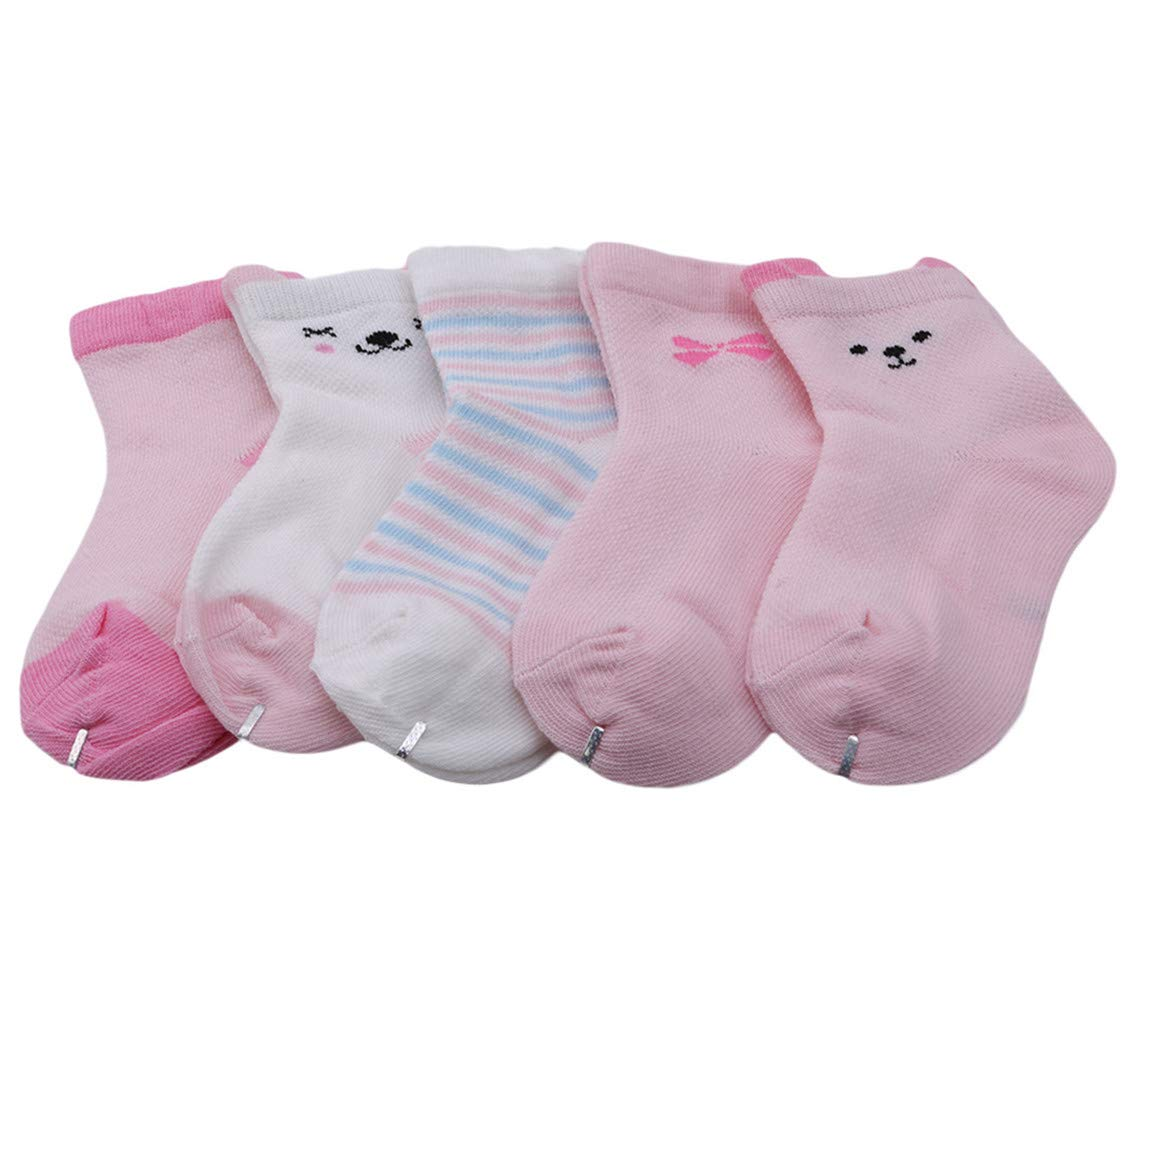 CH Baby Summer Warm Cotton Mesh Thin Socks Cute Cartoon Sweet Animal ShapedSoft Breathable Socks Good For Gift 5pcs Pink Rabbit L